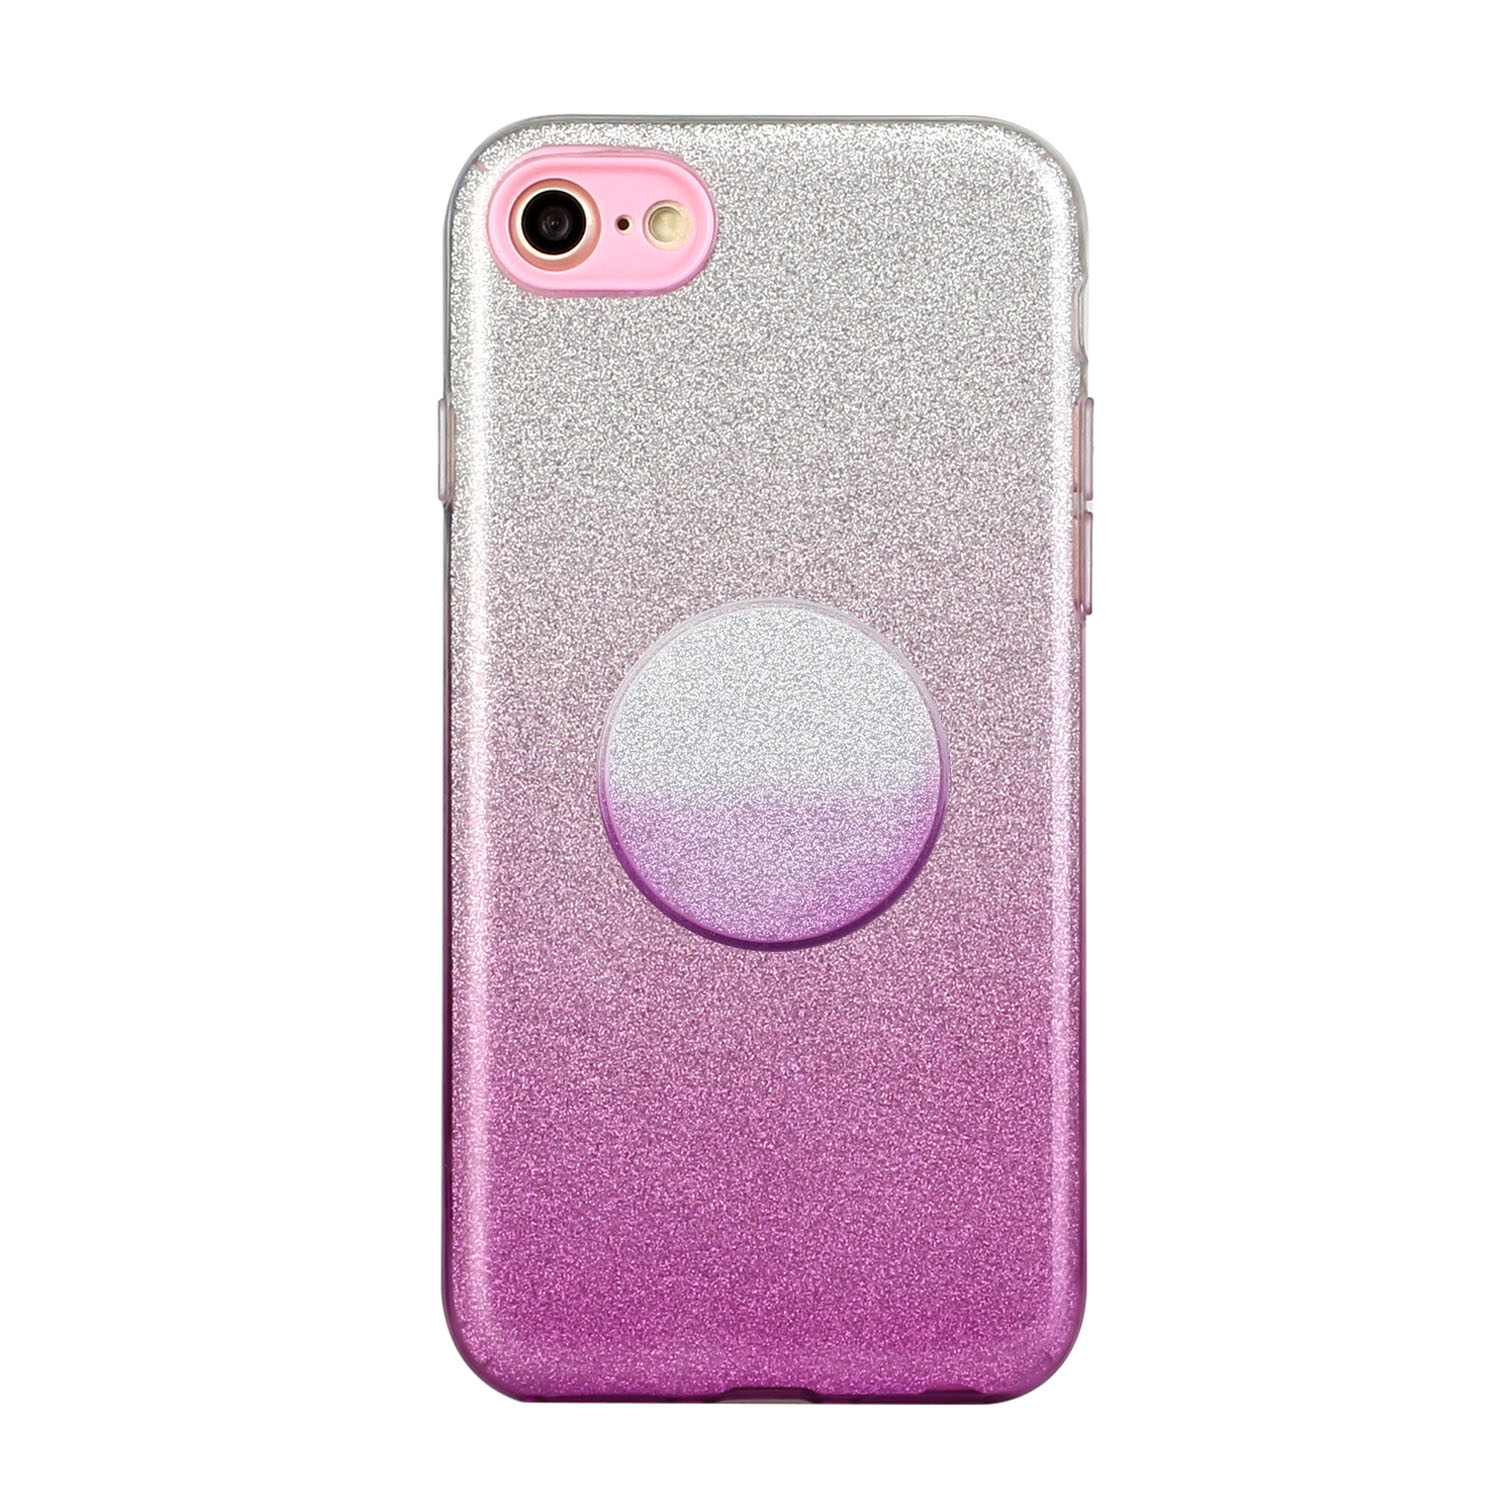 for HUAWEI Y5 2019/HONOR 8S/Y5/PSmart/honor 10 LITE Phone Case Gradient Color Glitter Powder Phone Cover with Airbag Bracket purple